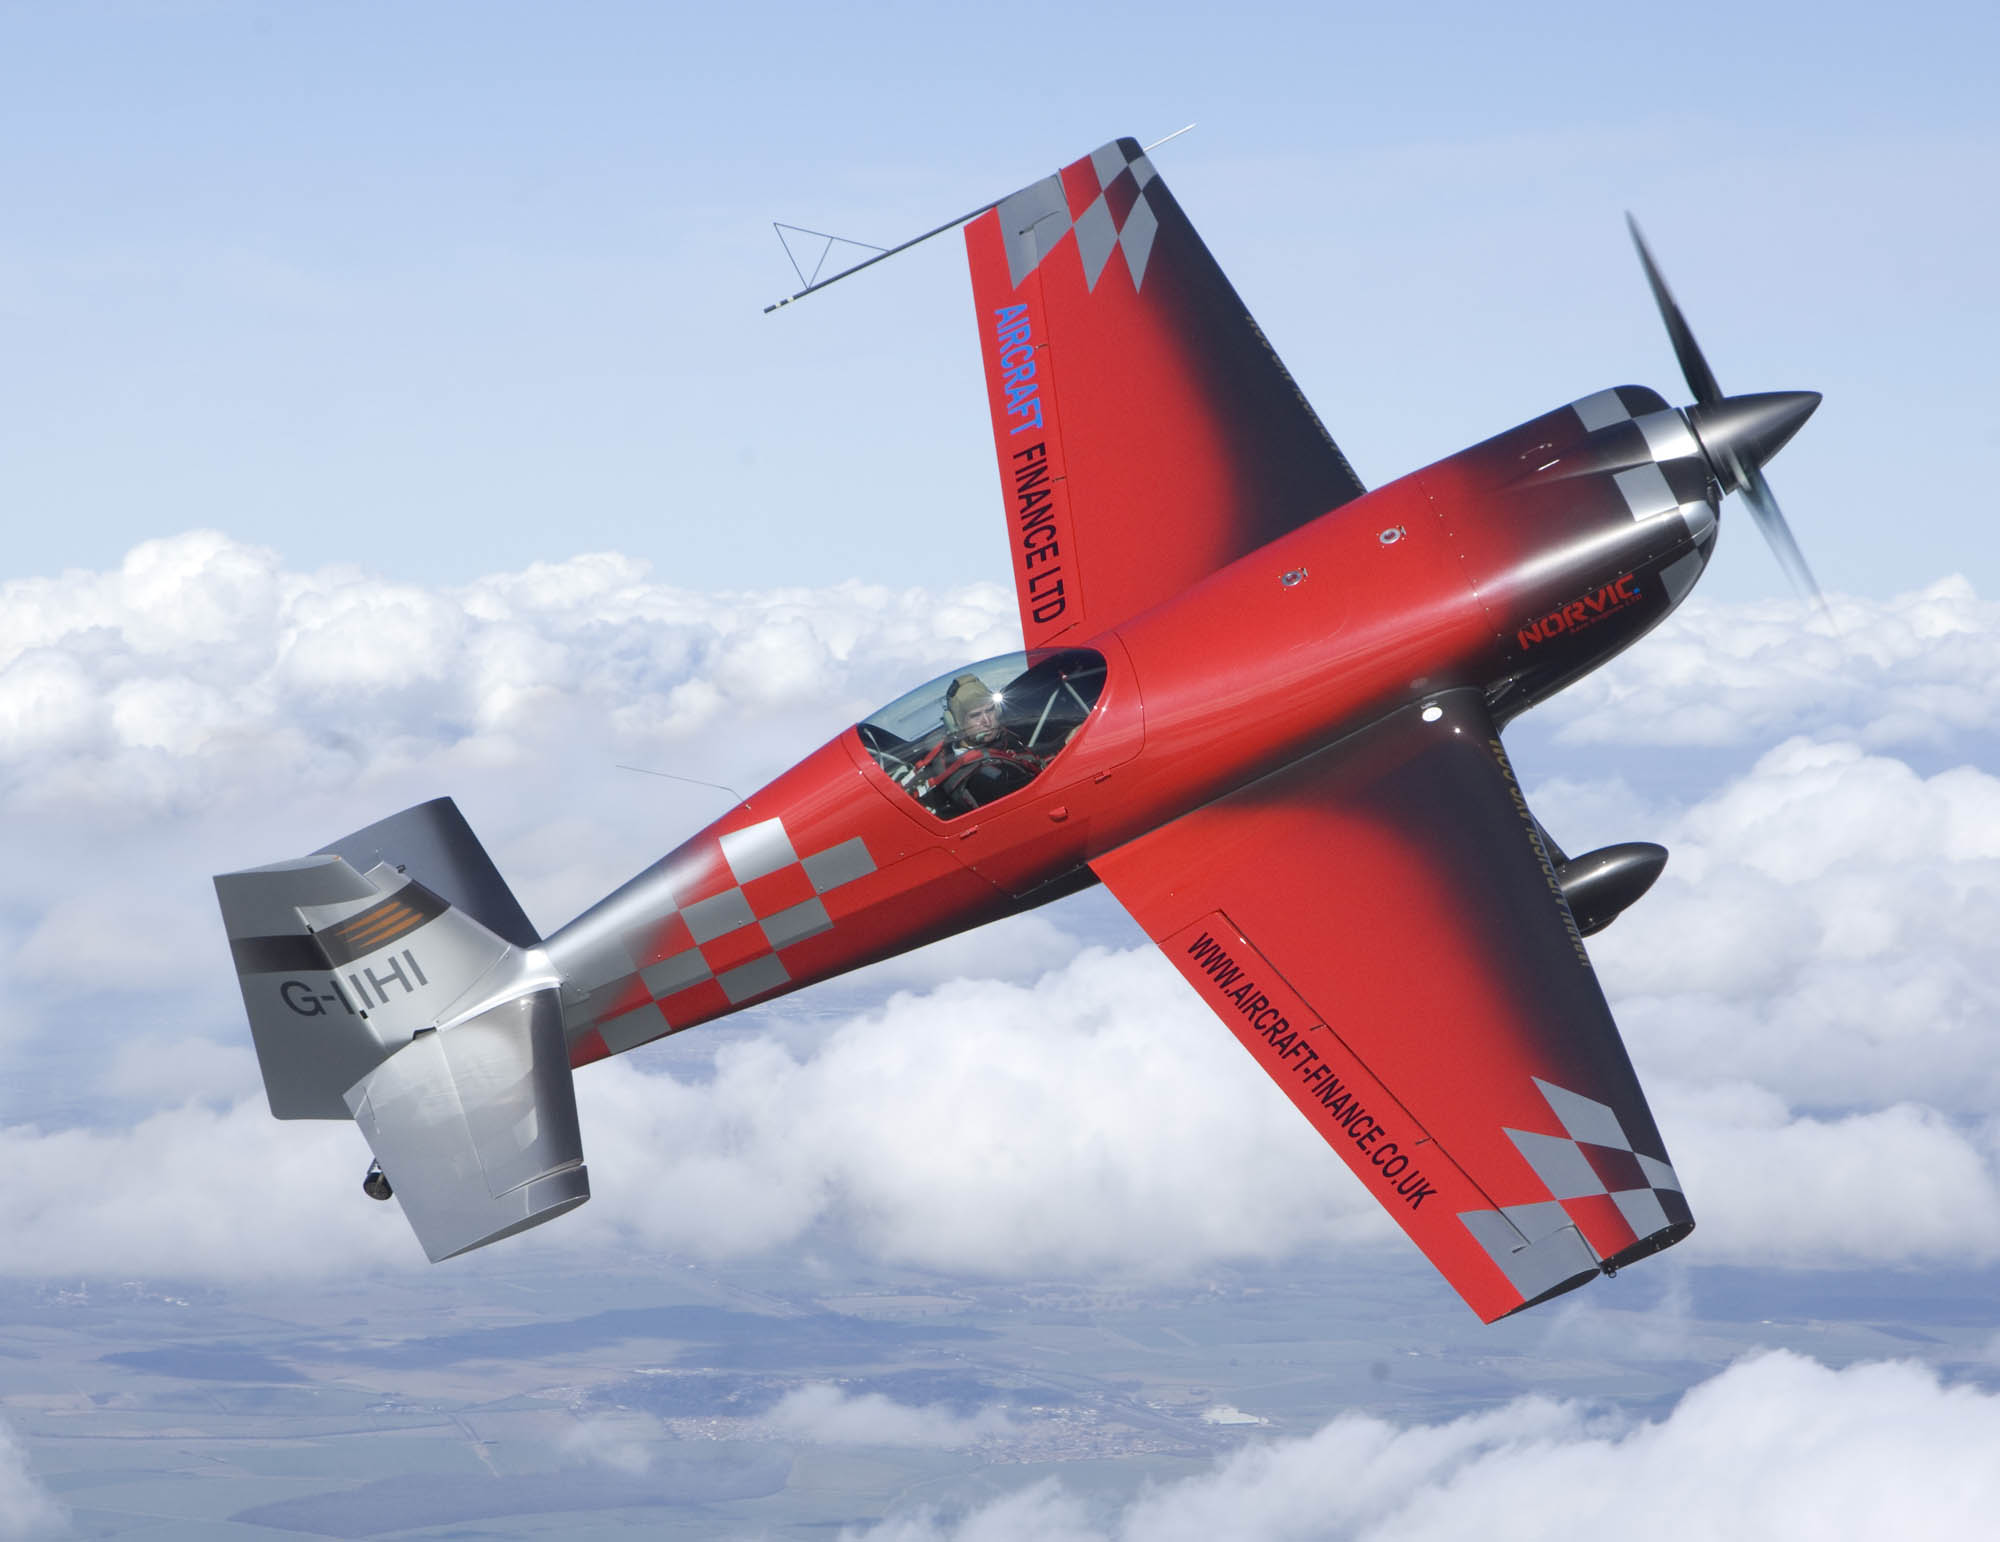 rc airplanes on sale with Extra 330sc Extra330sc Extra 330 Sc on 324500 1105423172 likewise Viperjet Mkii The Personal Fighter Jet as well Aircraft further 91 Extra 300 RedWhiteBlack p 495 as well Item.